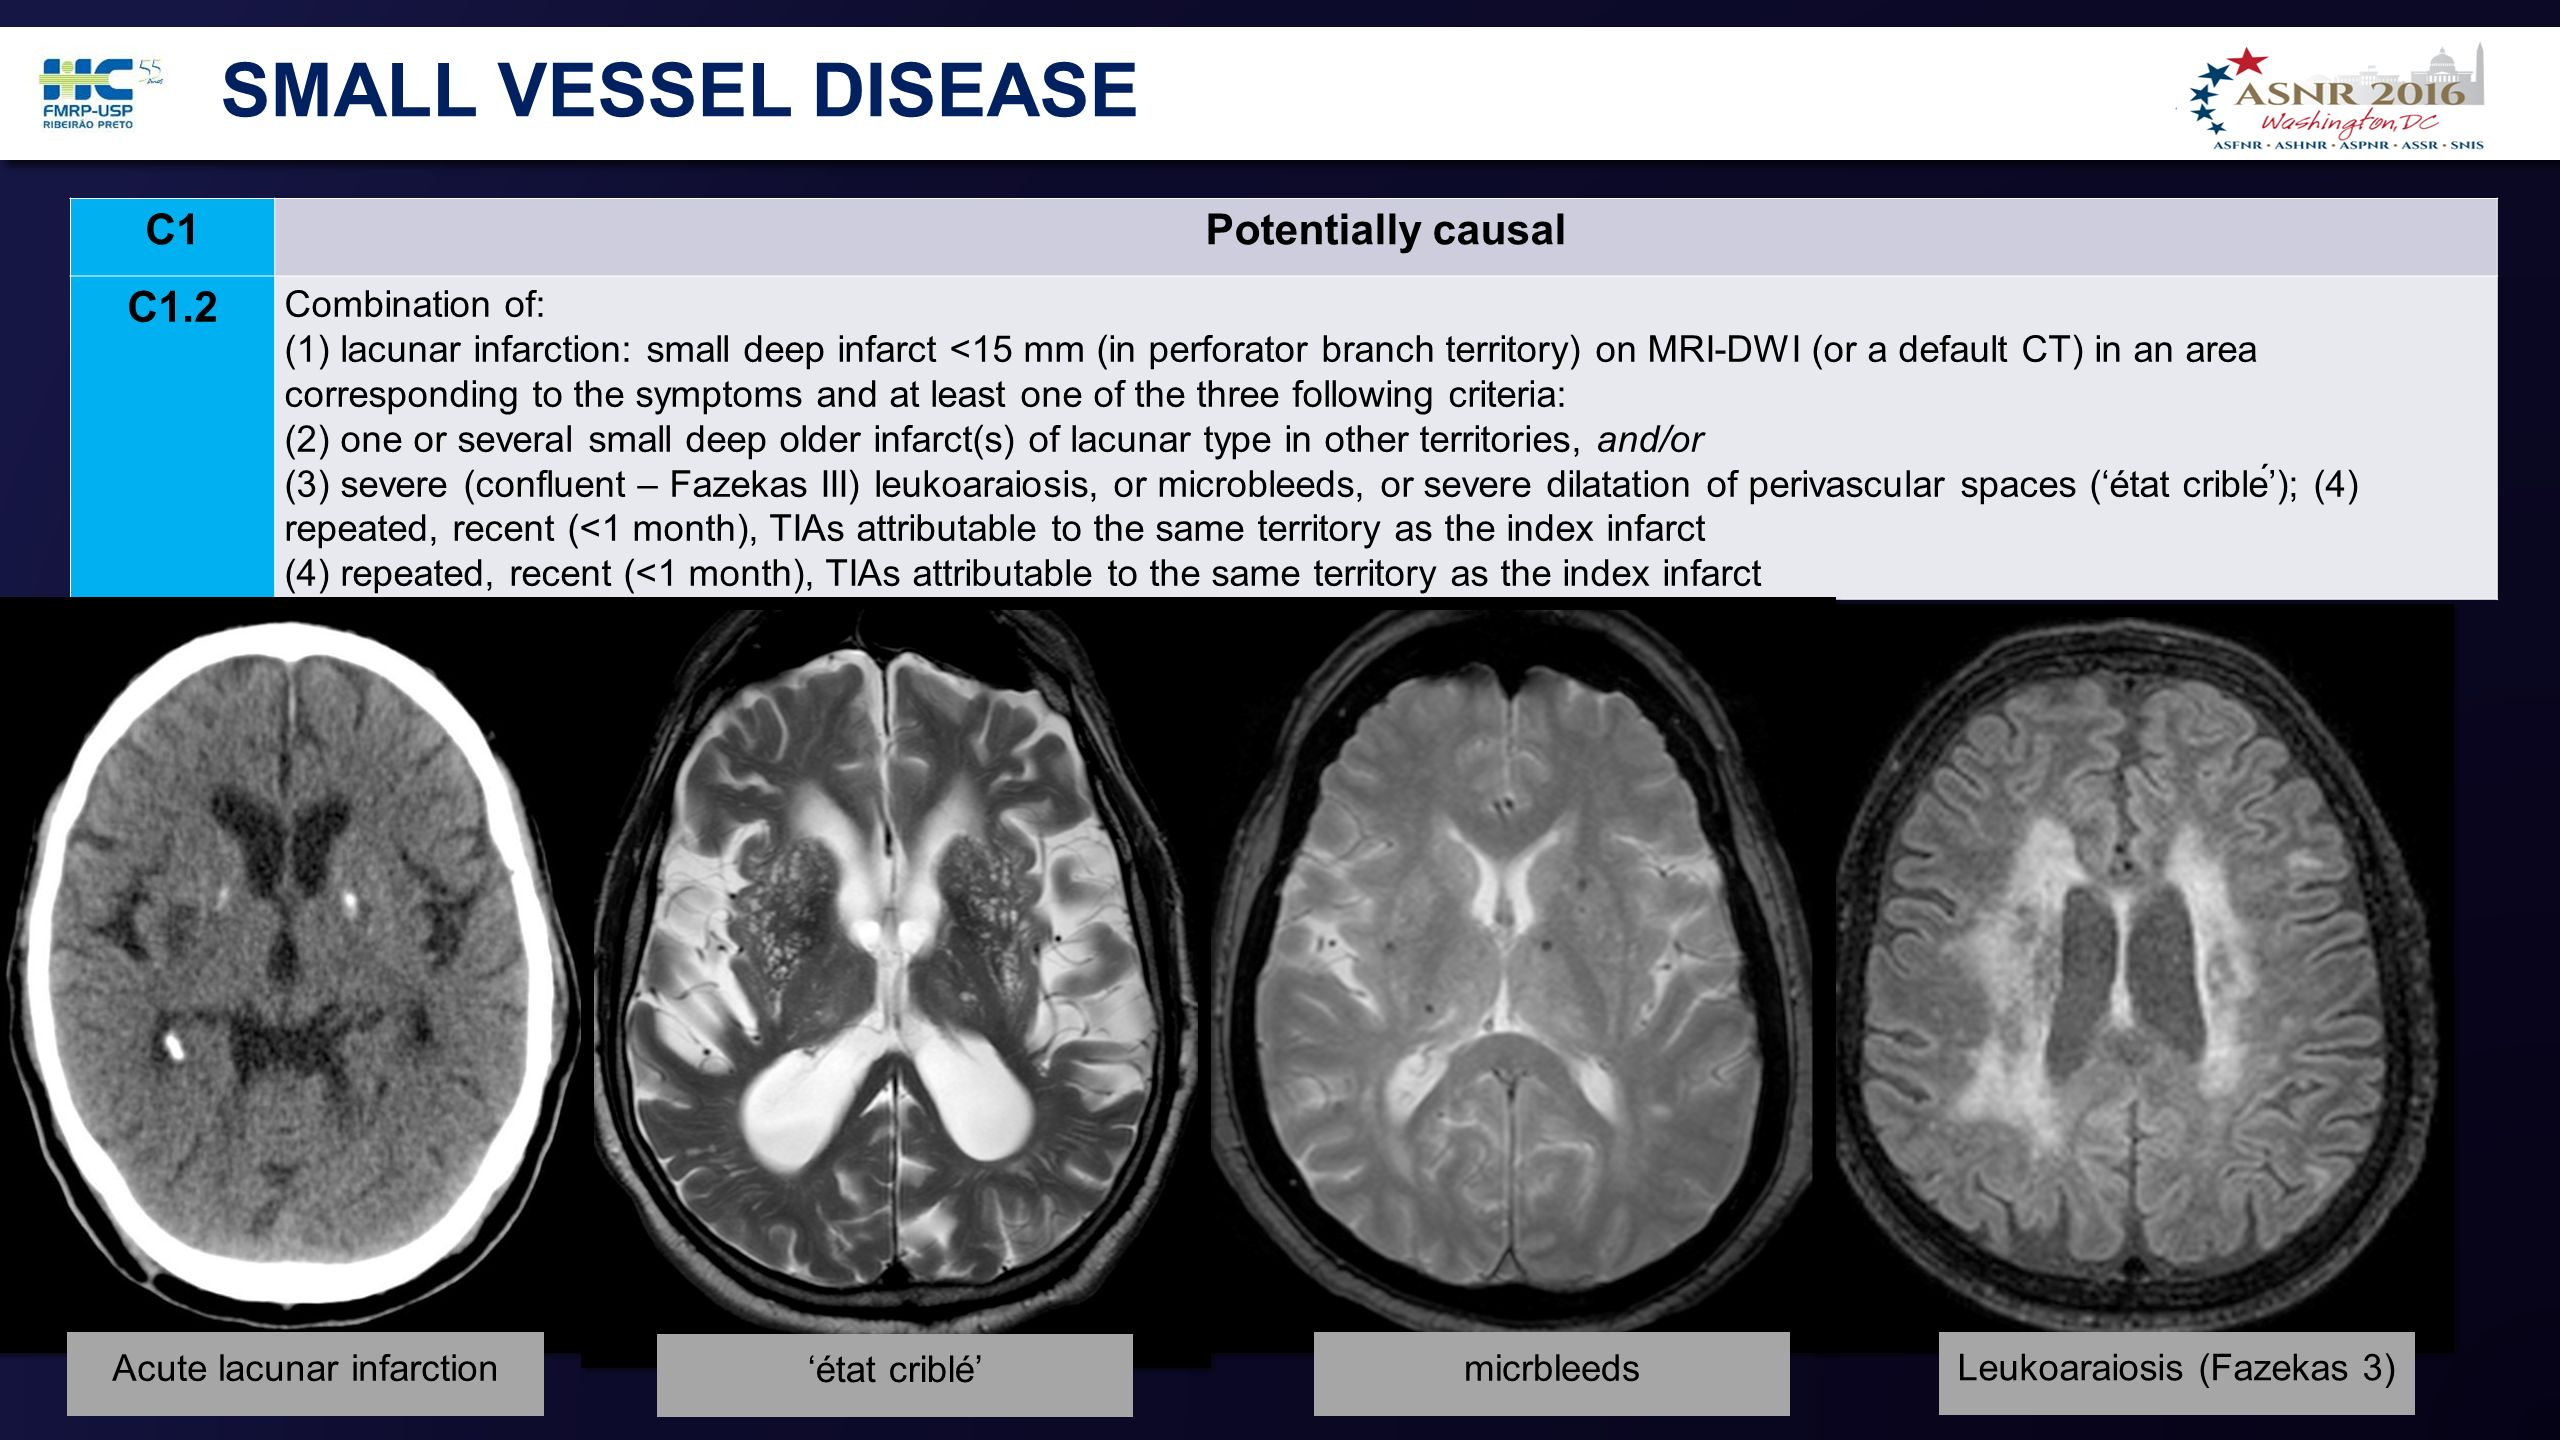 Small vessel disease hard to